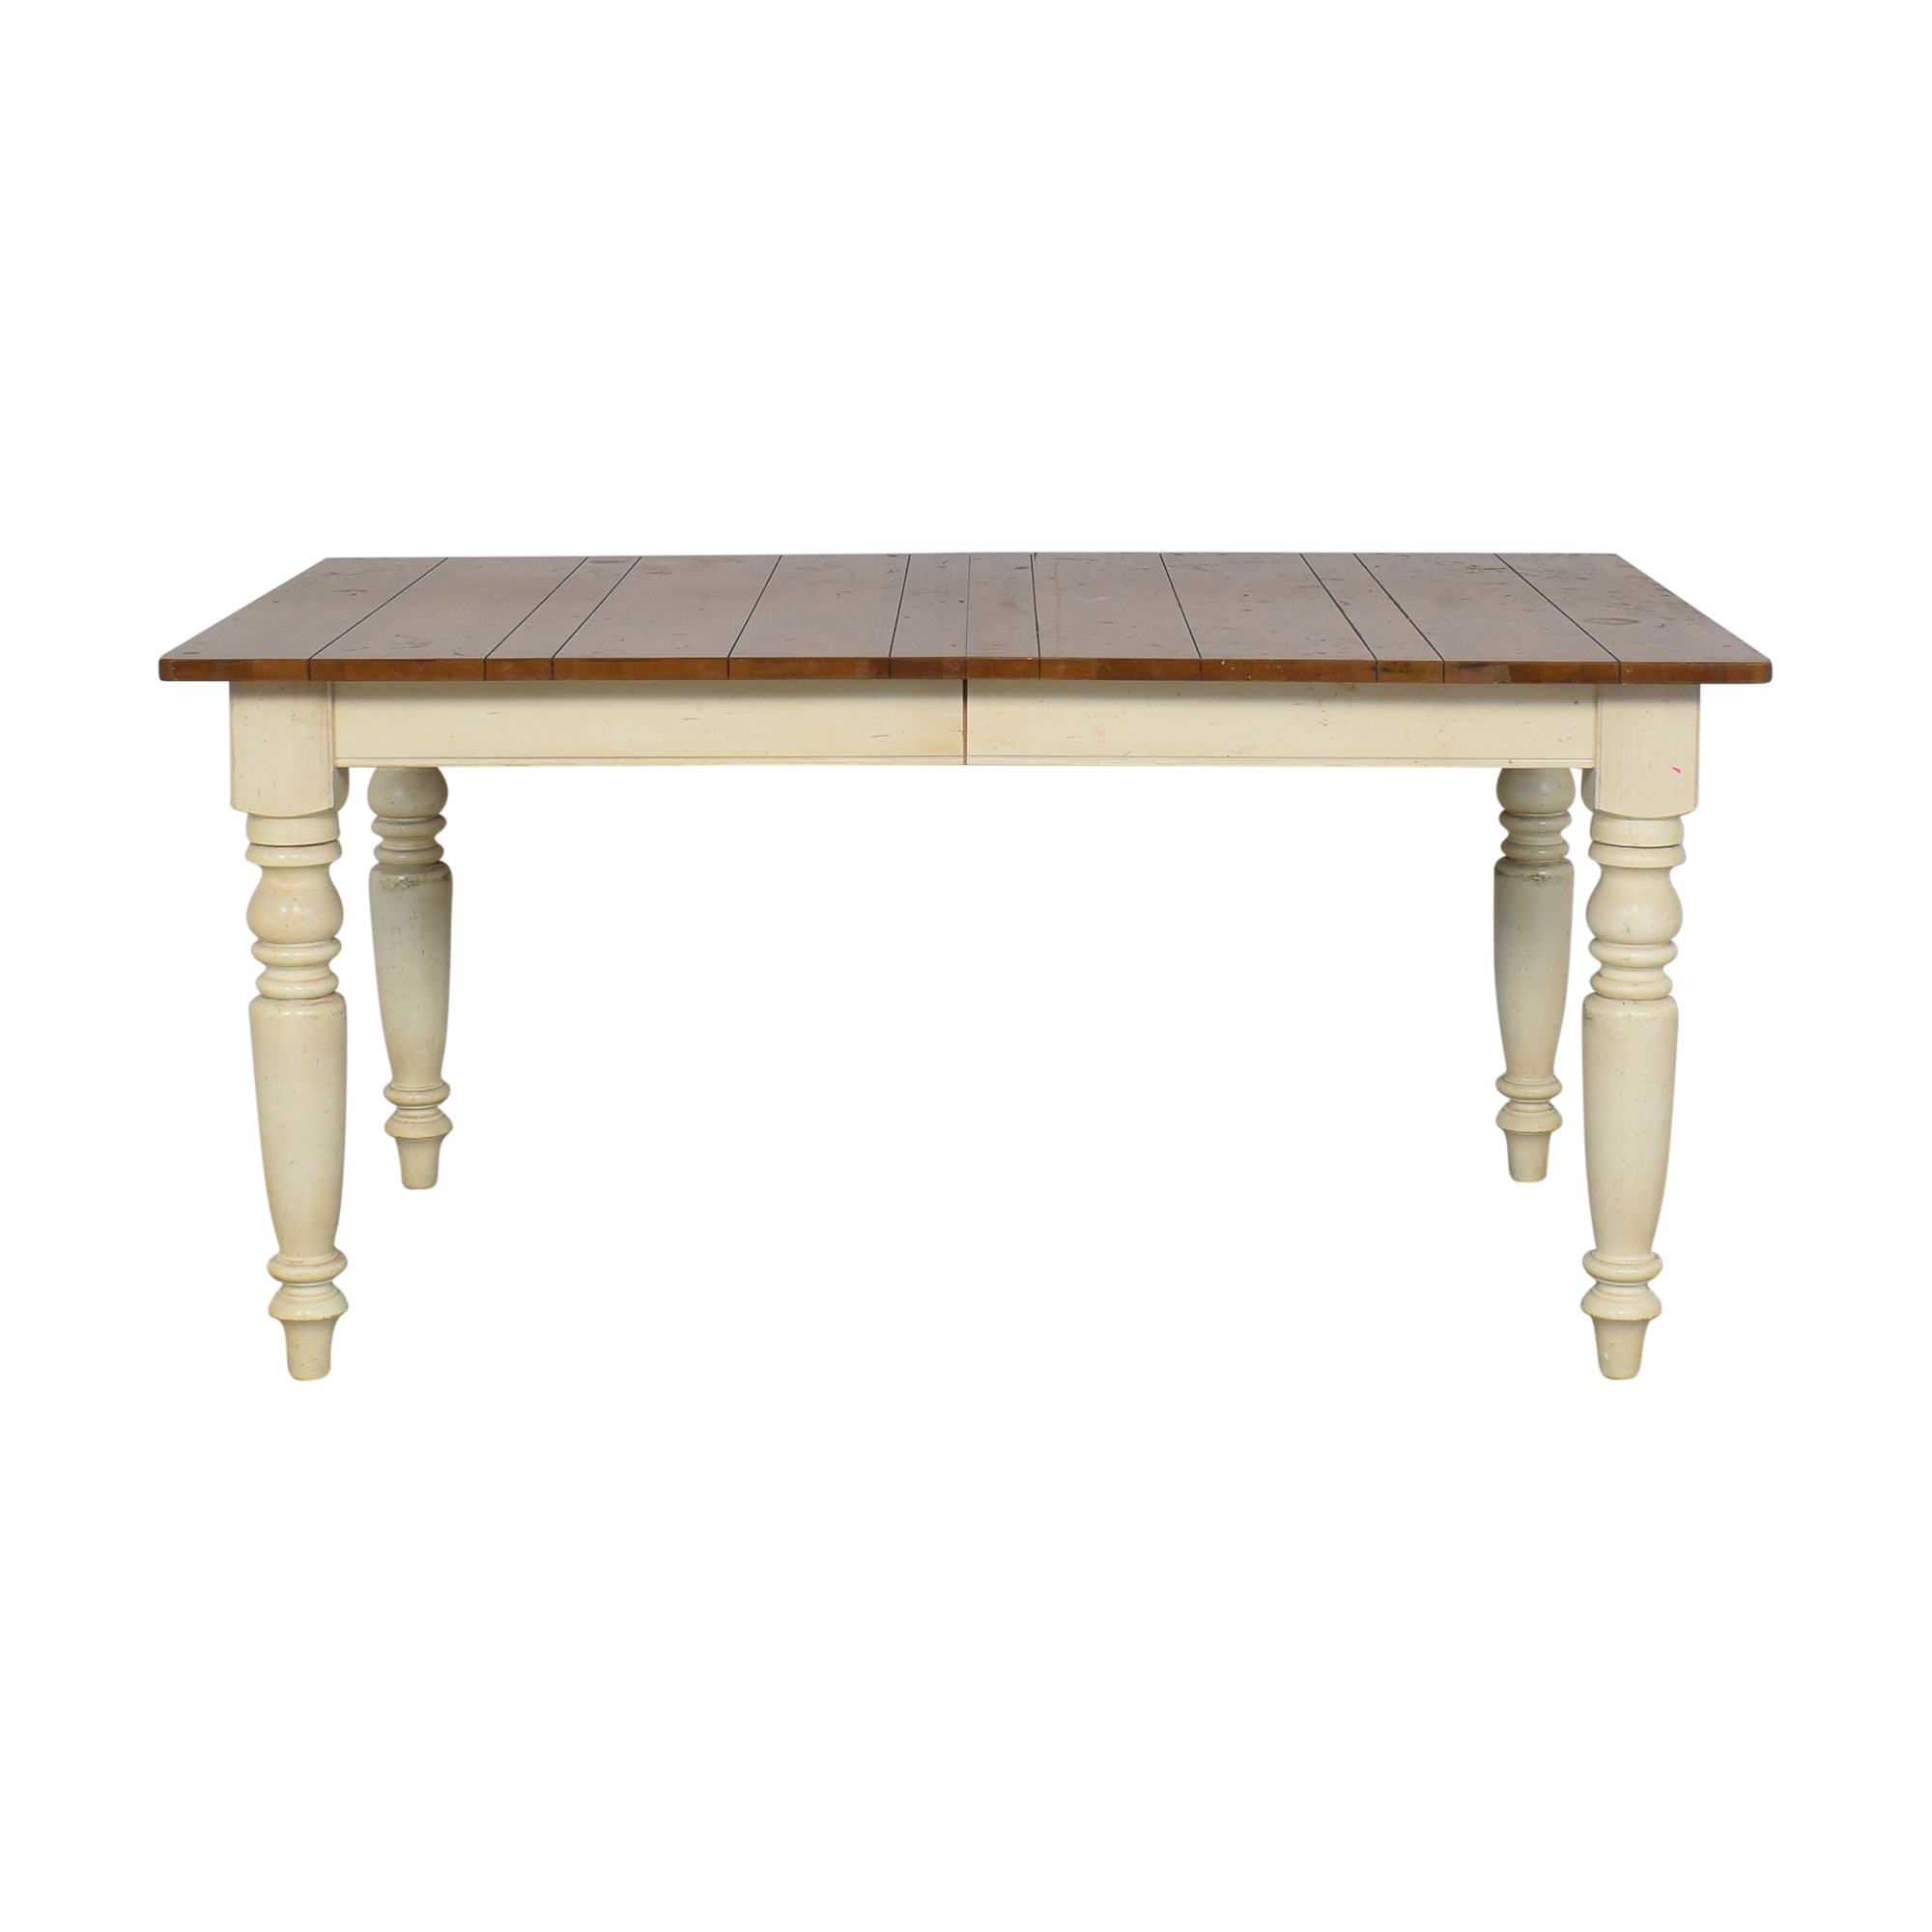 Ethan Allen Farmhouse Dining Table with Leaf / Tables